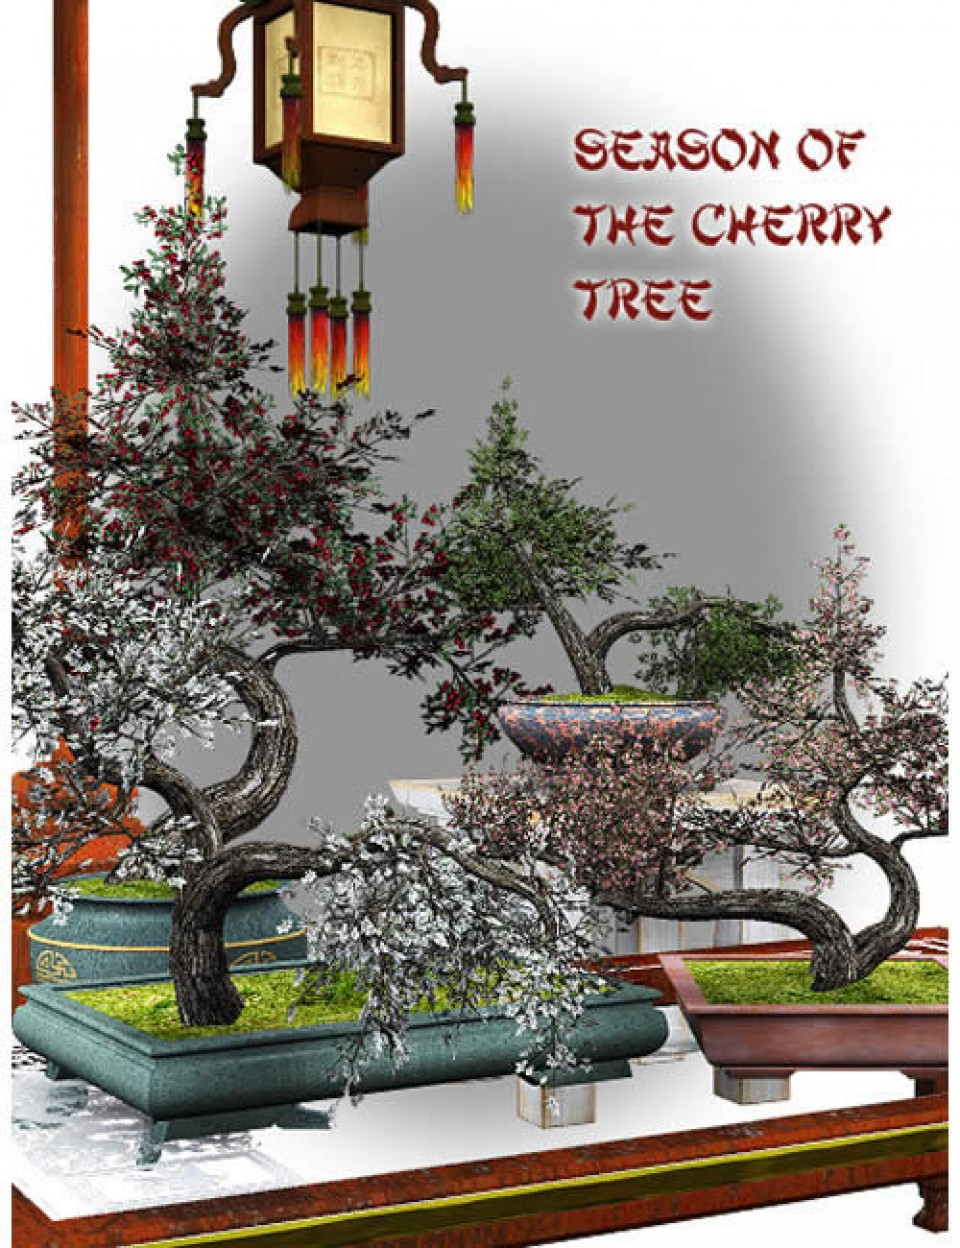 Season of the Cherry Tree